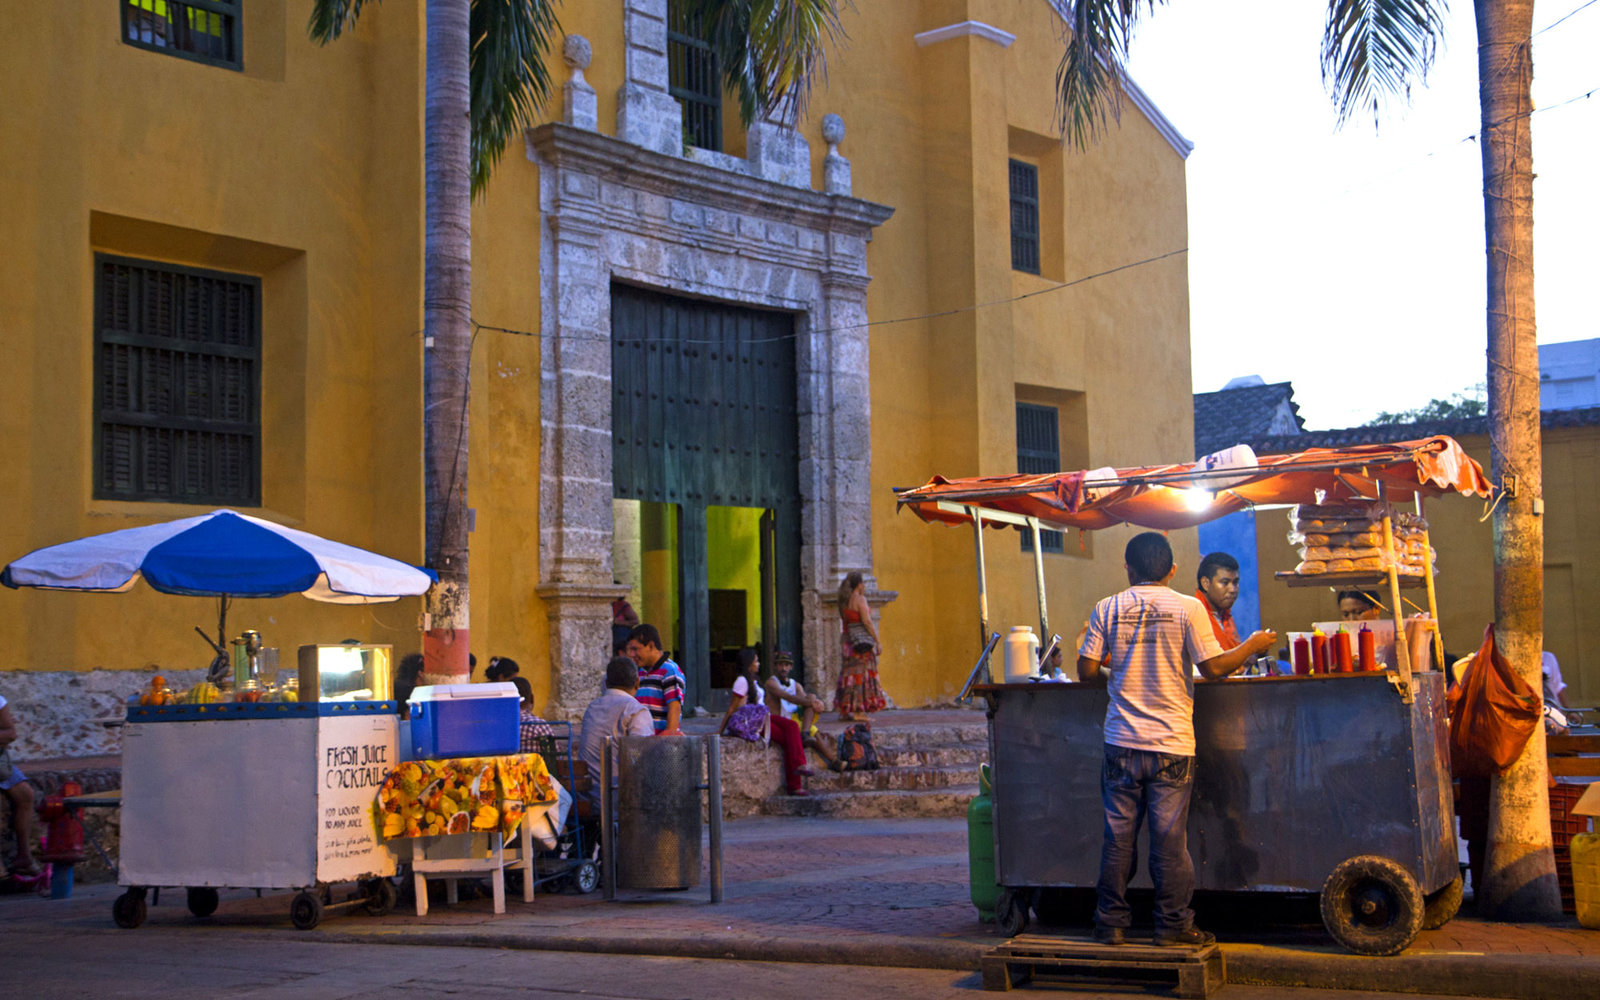 Cartenga Colombia Street Food